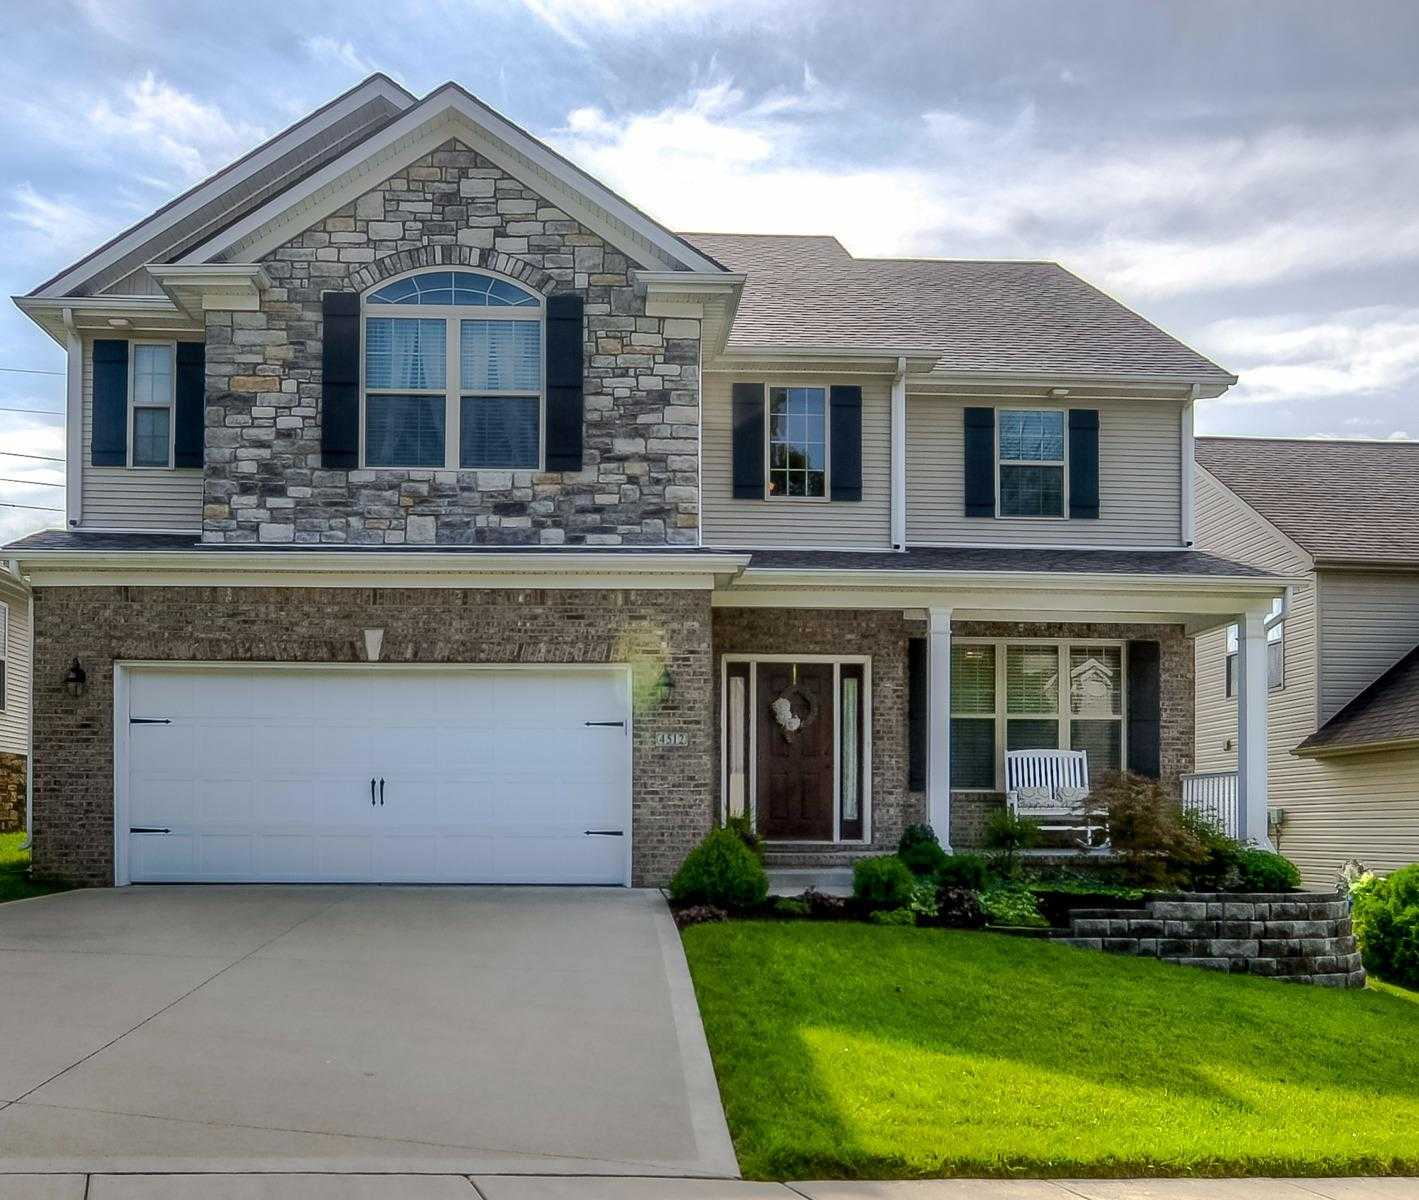 $319,000 - 4Br/3Ba -  for Sale in Pinnacle, Lexington